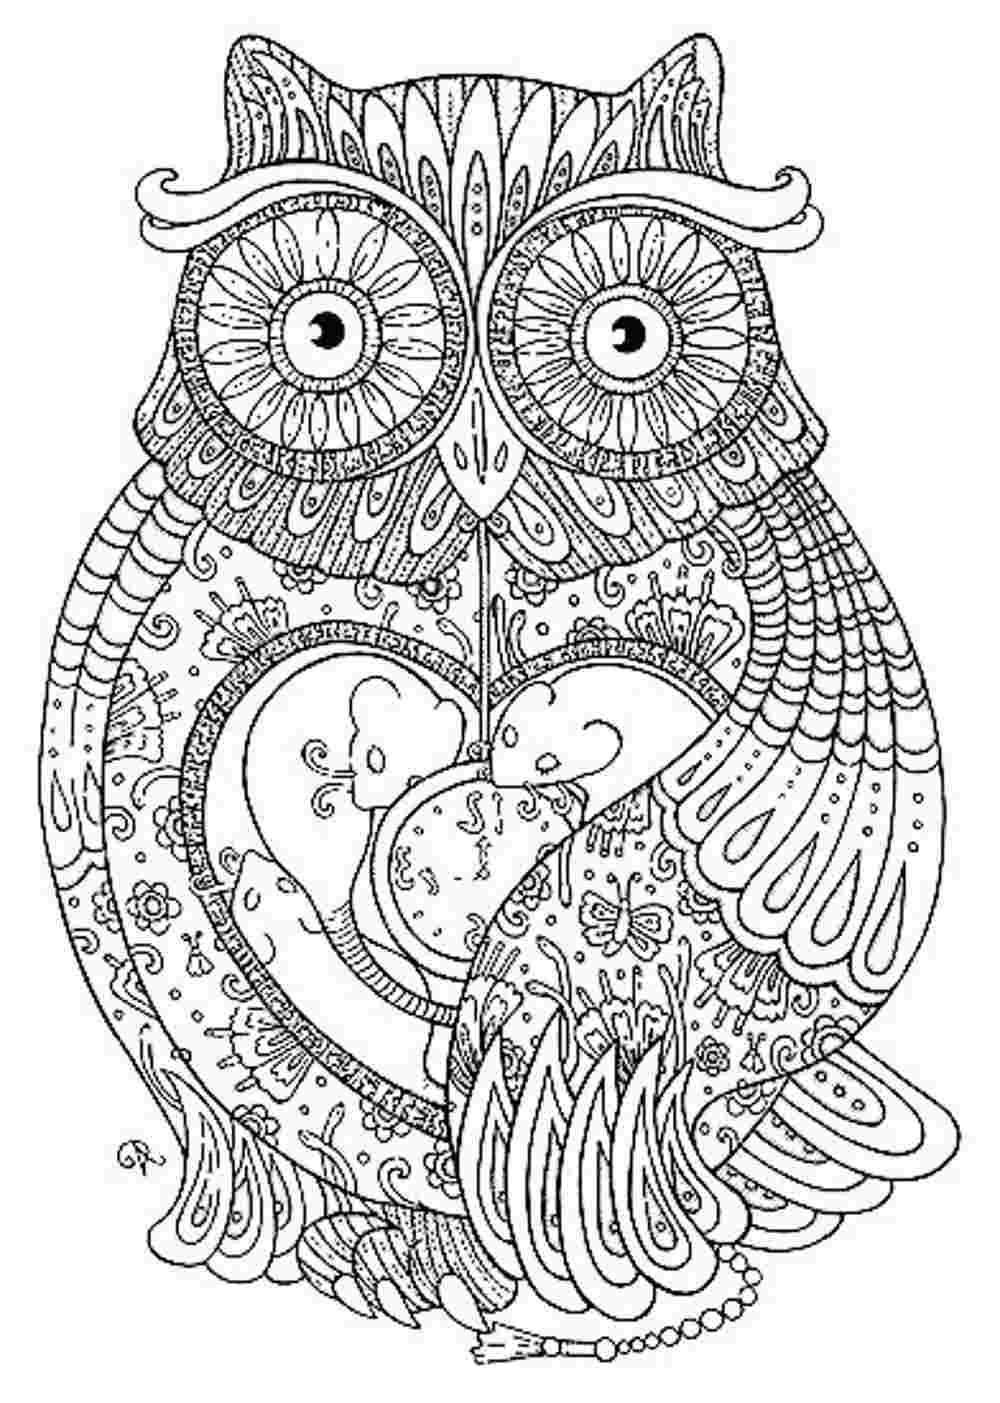 Animal mandala coloring pages to download and print for free | mandala art coloring pages animals